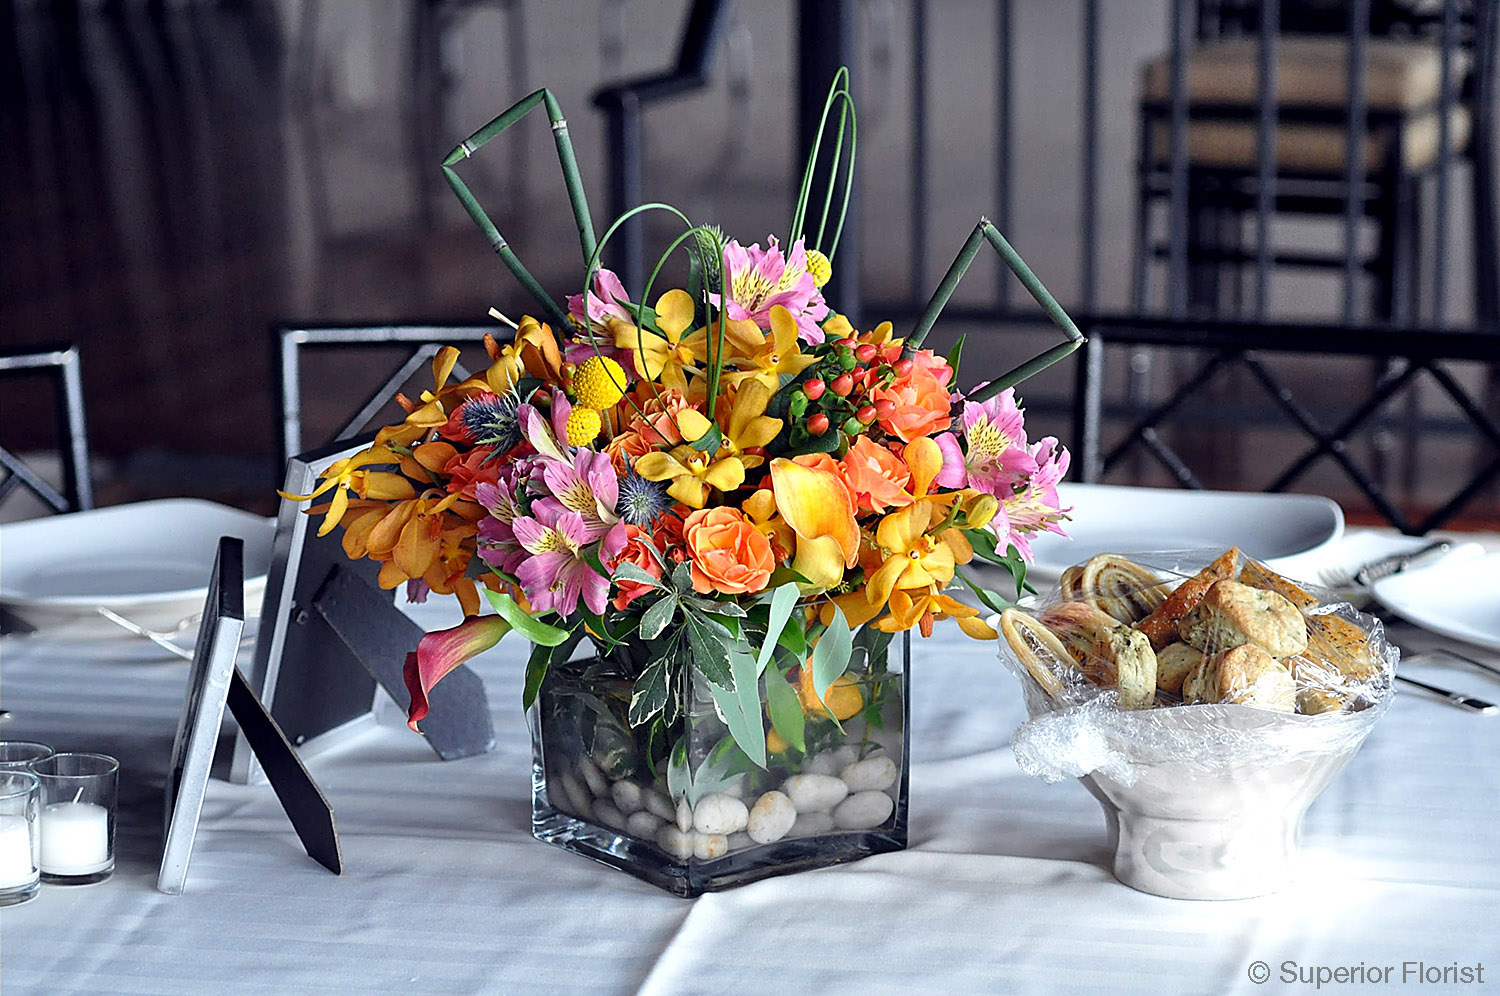 Superior Florist – Centerpieces:  Callas, Alstroemerias, Mokara orchids, spray roses, thistle, Craspedias, Hypericums, steel grass and Equisetums (aka horse tail). Glass, cube vase with river rocks in base.